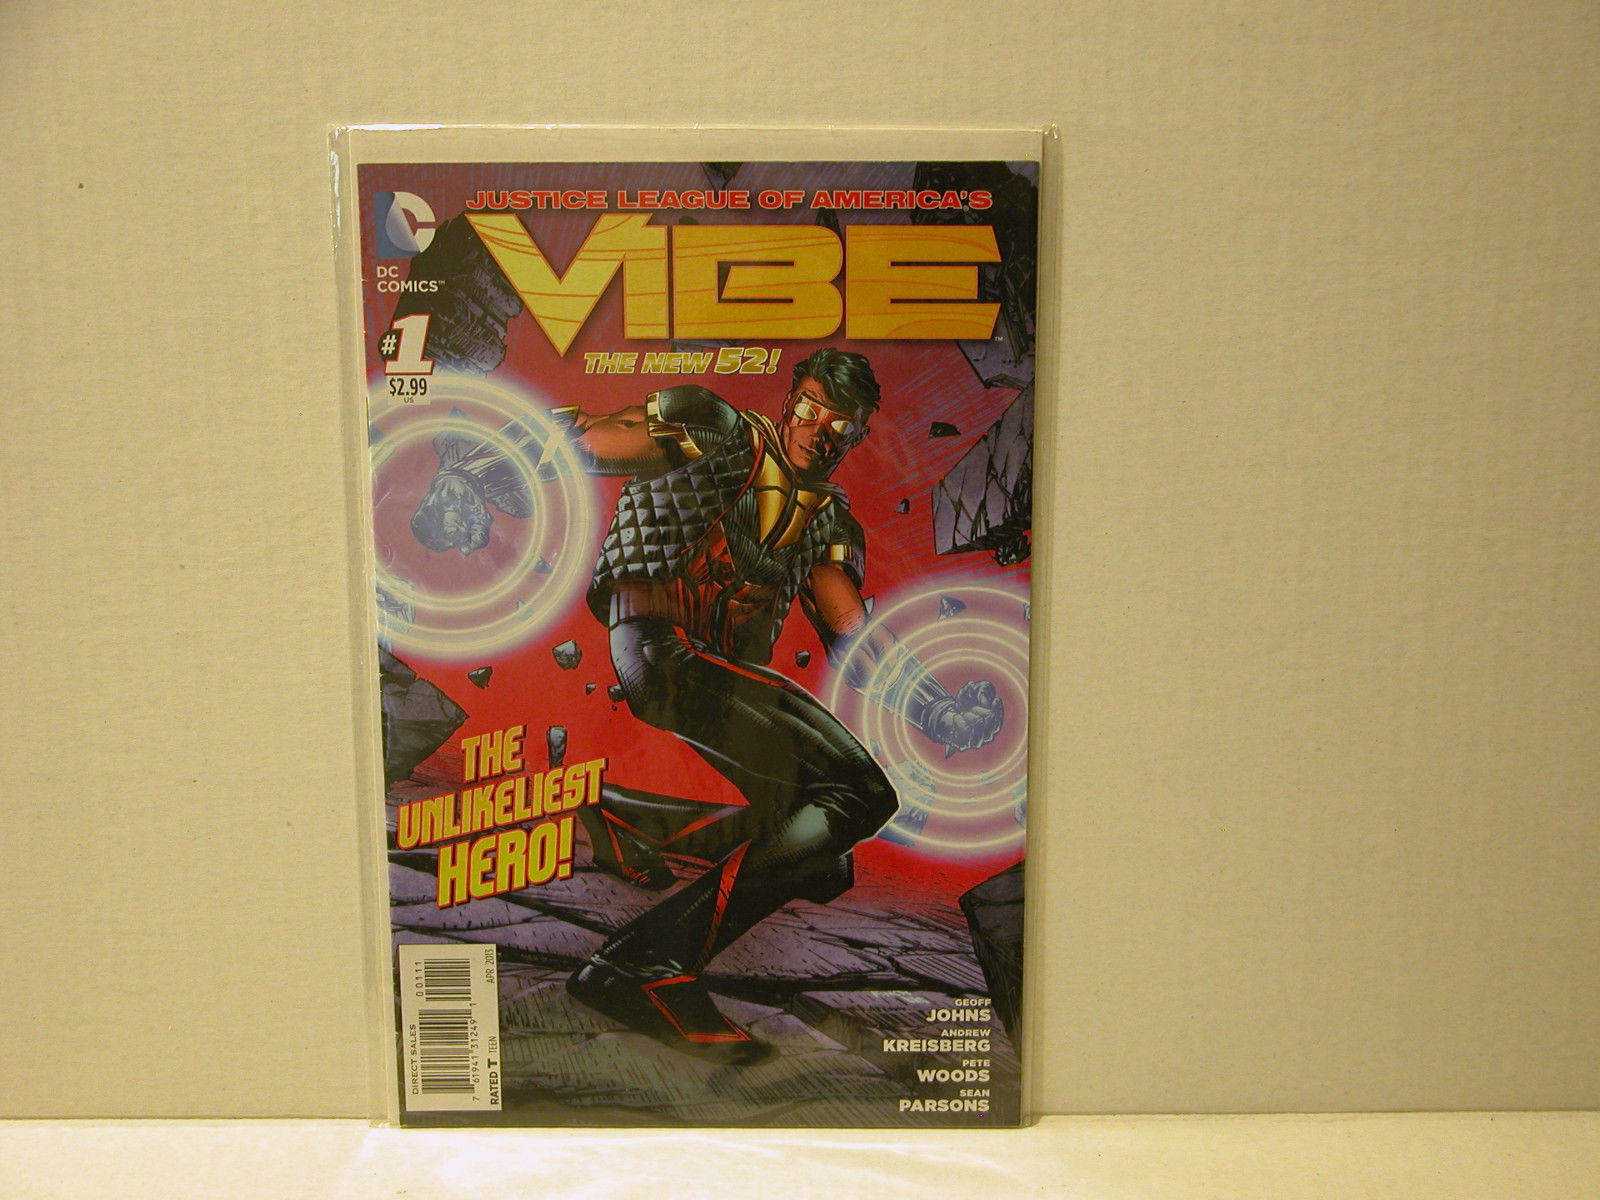 Primary image for VIBE #1 AND #5 - NEW 52  FIRST RUN + ALL FLASH #1 - FREE SHIPPING